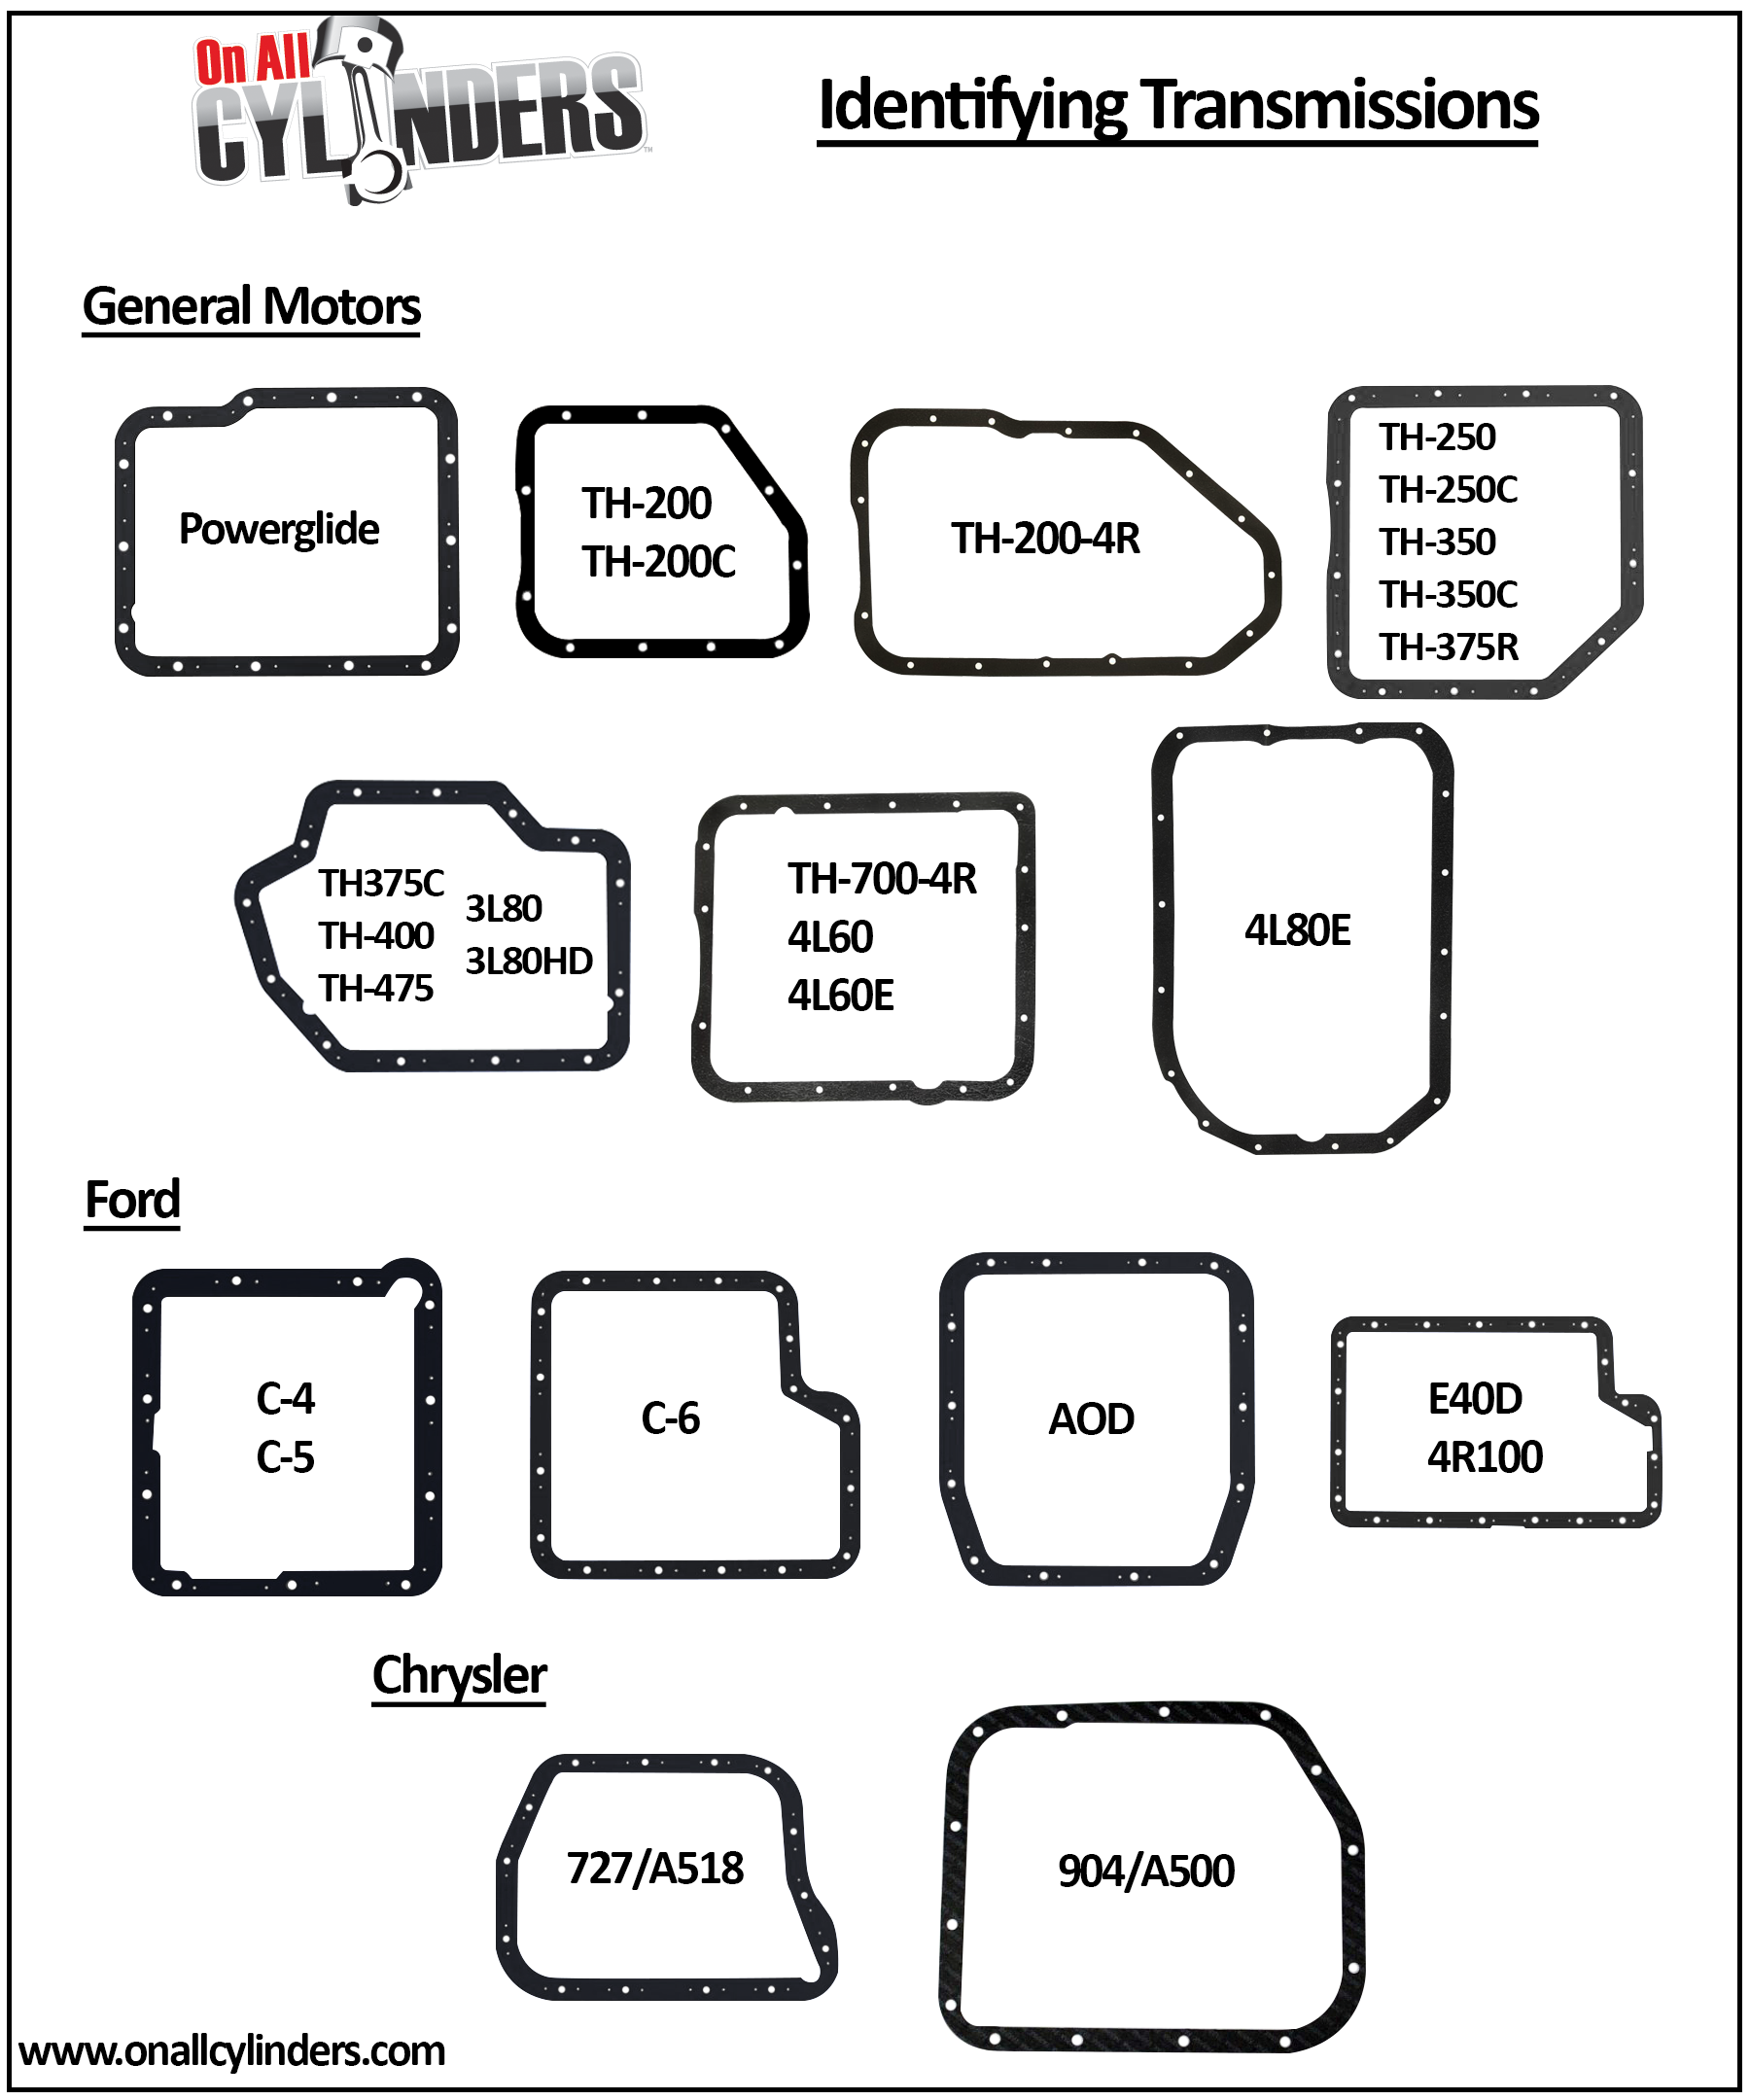 2001 Cadillac Deville North Star Engine Diagram besides Discussion T21988 ds741280 additionally 103oz 5 2 Firing Order Diagram further 237746 Torque Specs 2 besides 5qr0o Ford Explorer Xls Change Crank Shaft Sensor Ford. on dodge ram 1500 v8